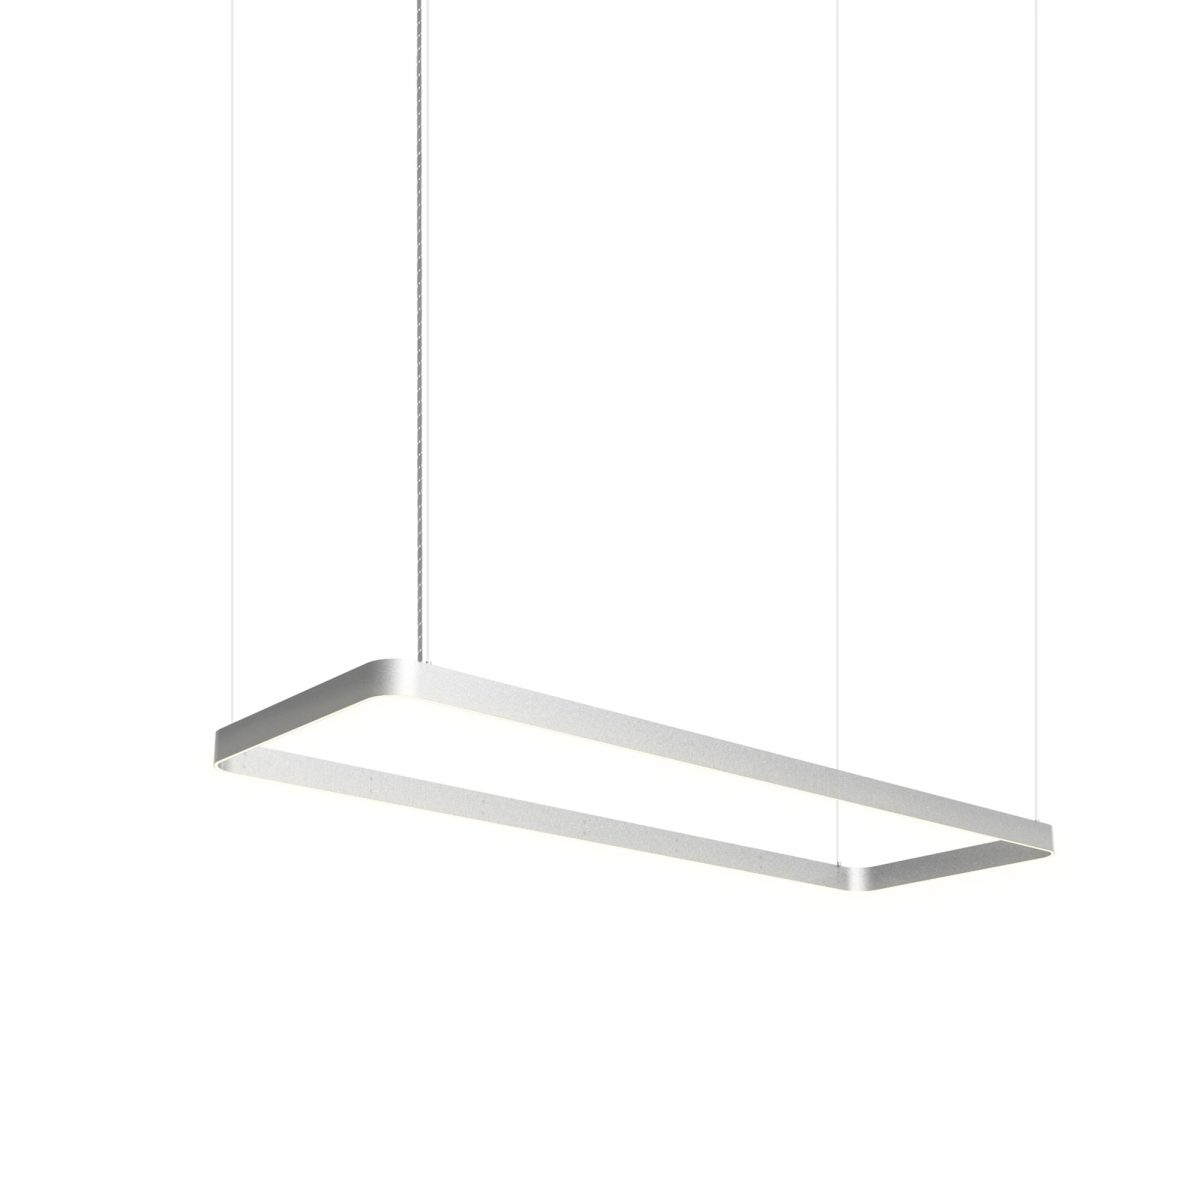 JSPR Eden 50×150 Silver Rectangle